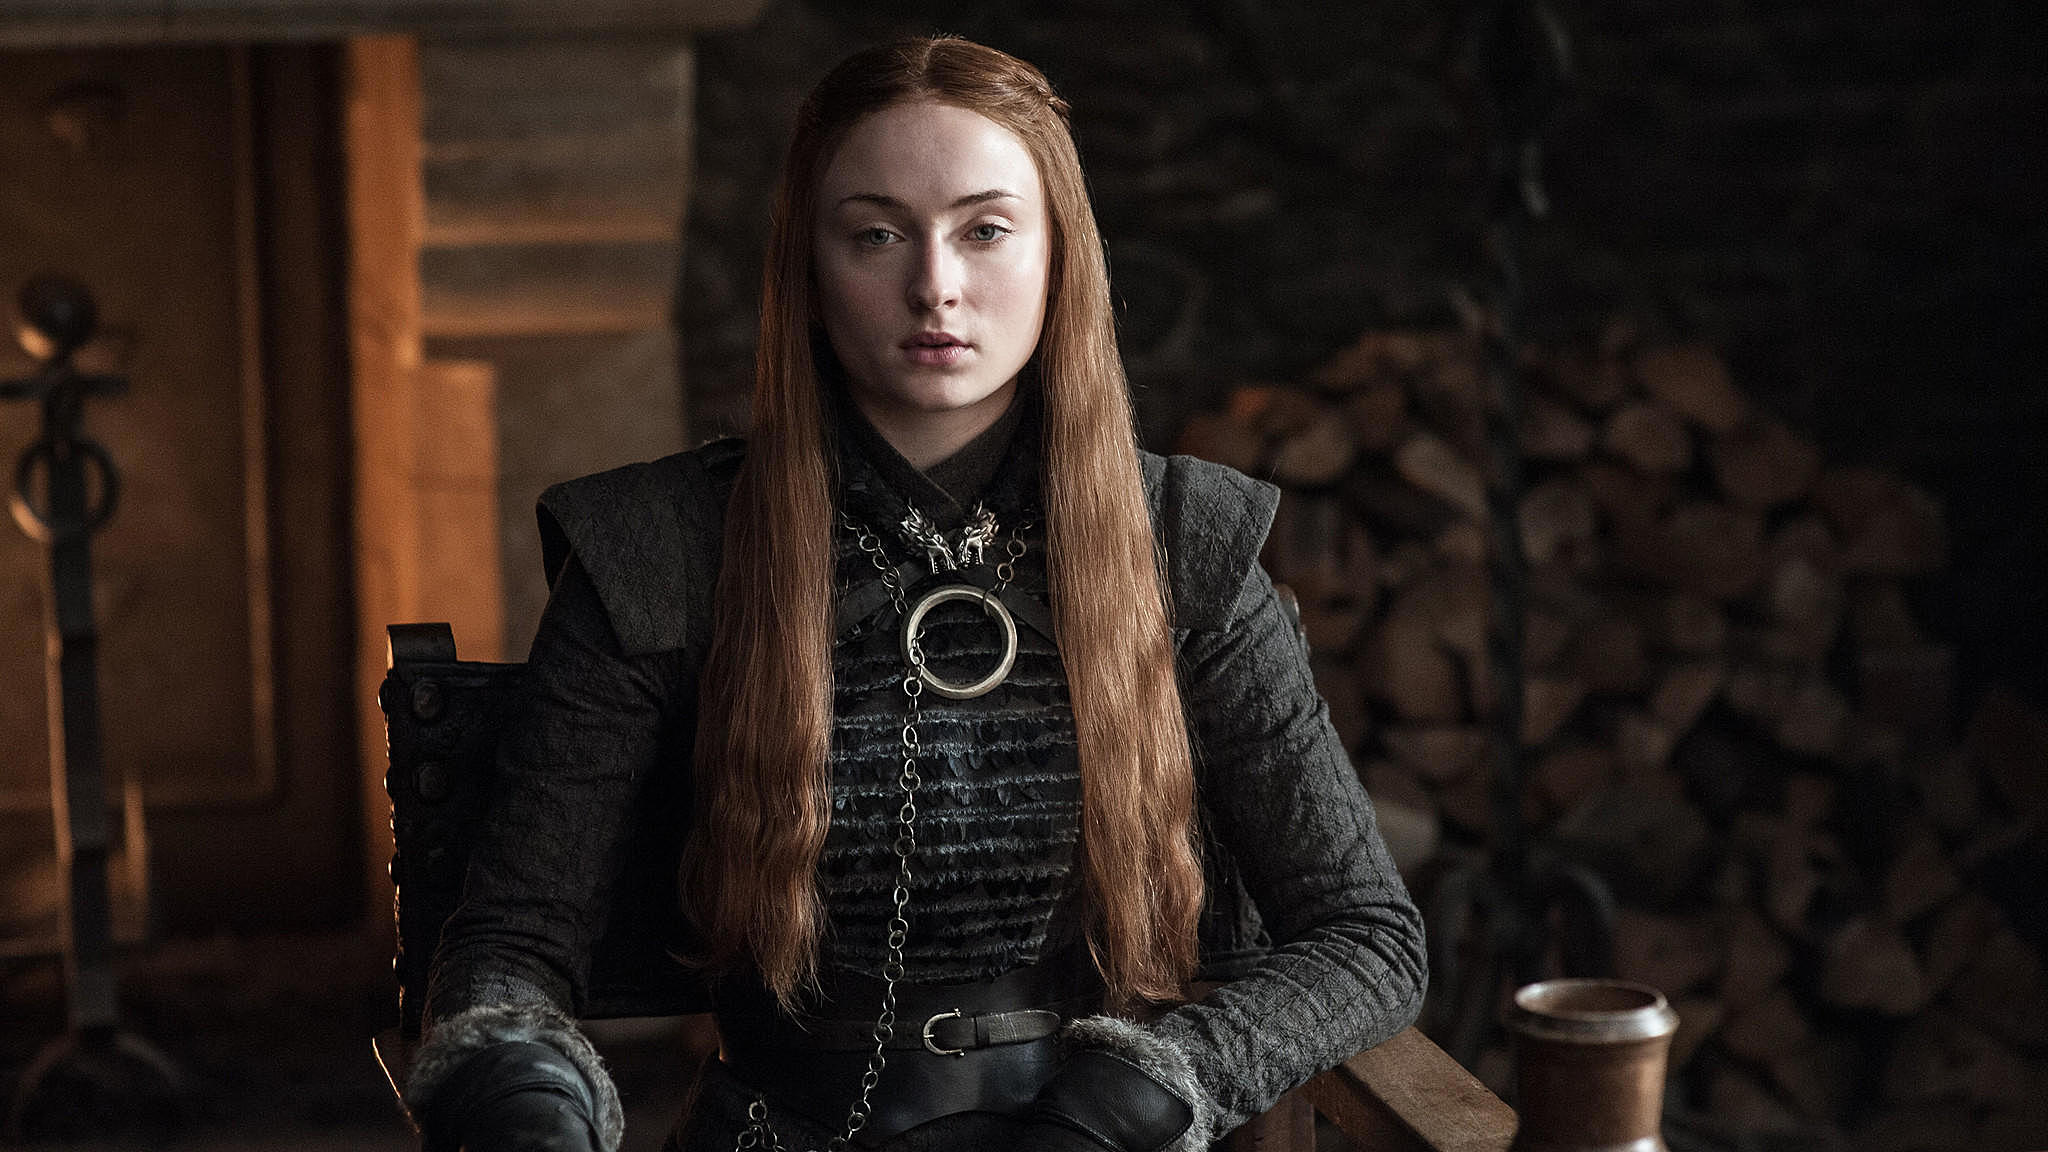 CONFIRMED: Game of Thrones will premiere until 2019. (Photo: Release)